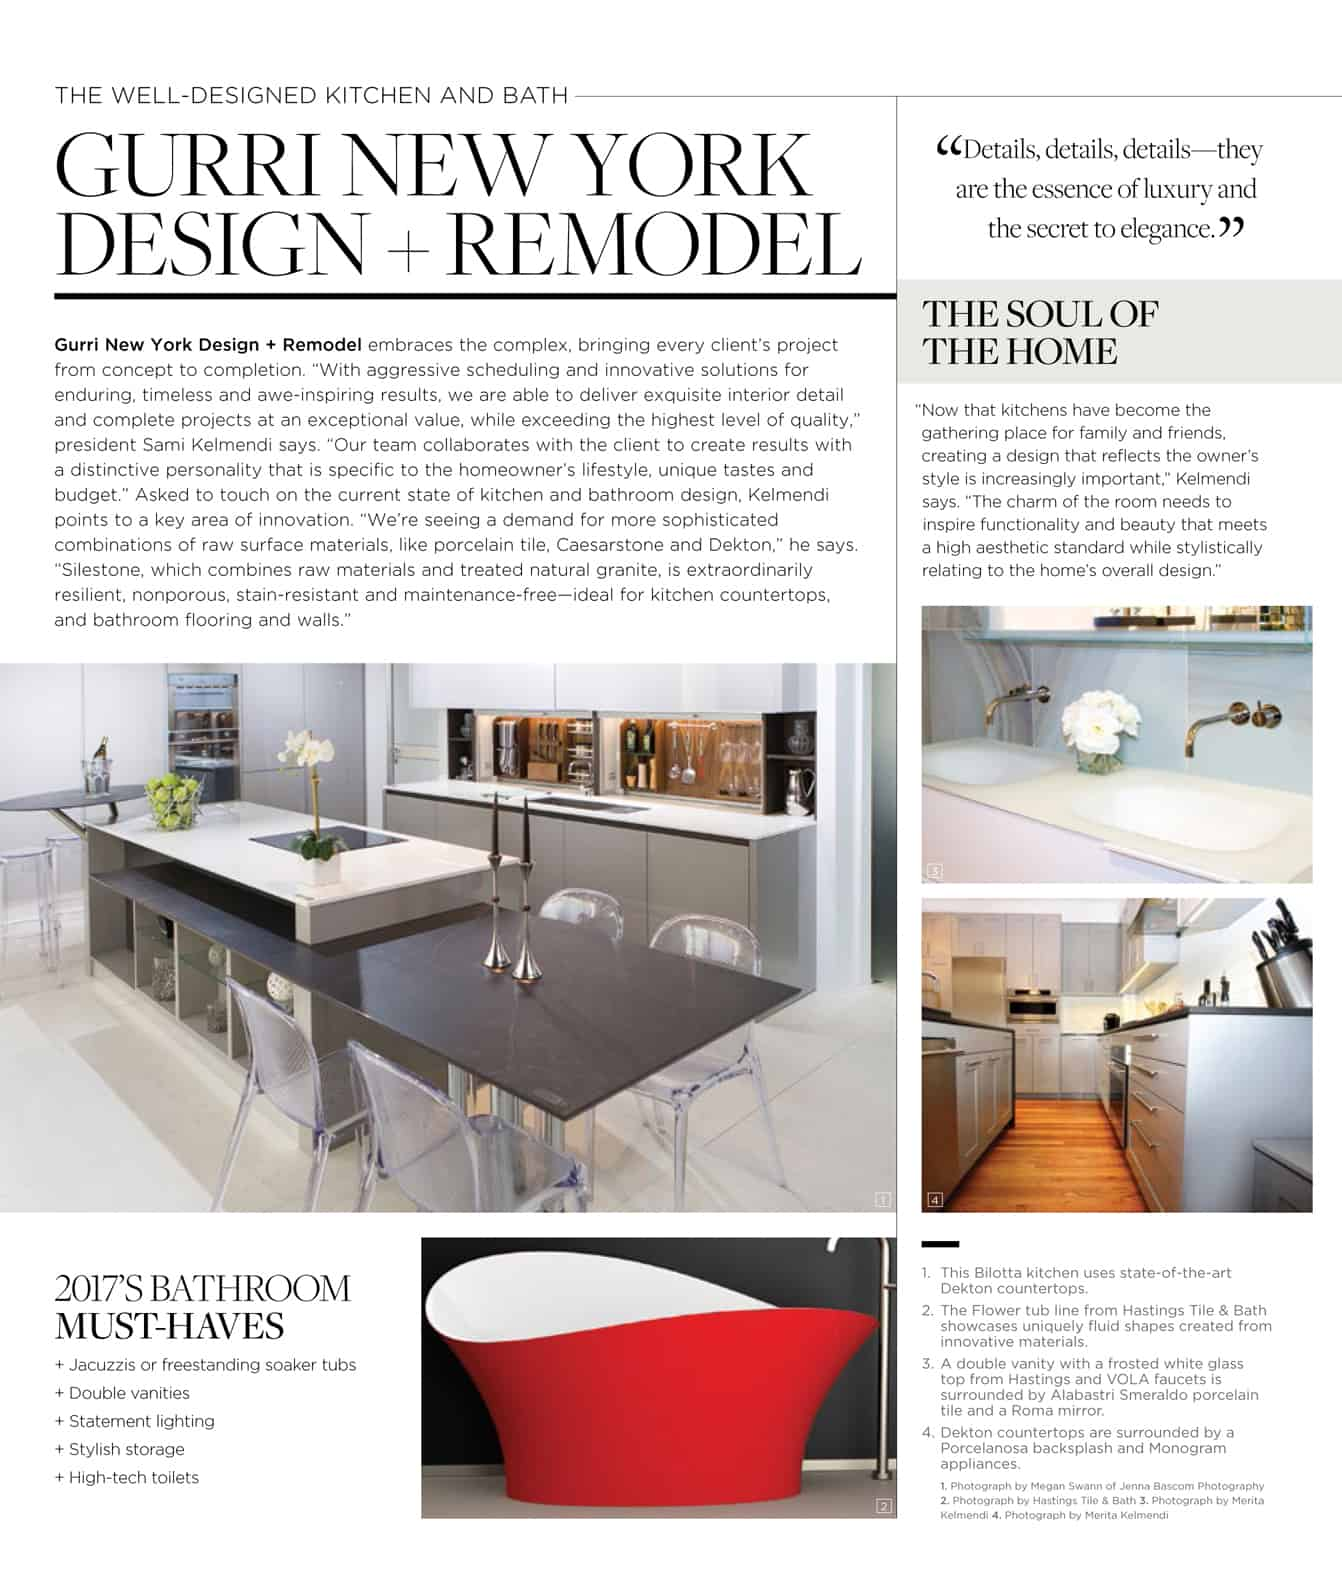 Gurriu0027s Own Sami Kelmendi Was Interviewed In The October Luxe Interiors +  Design Magazineu0027s The Well Designed Kitchen U0026 Bath Article.